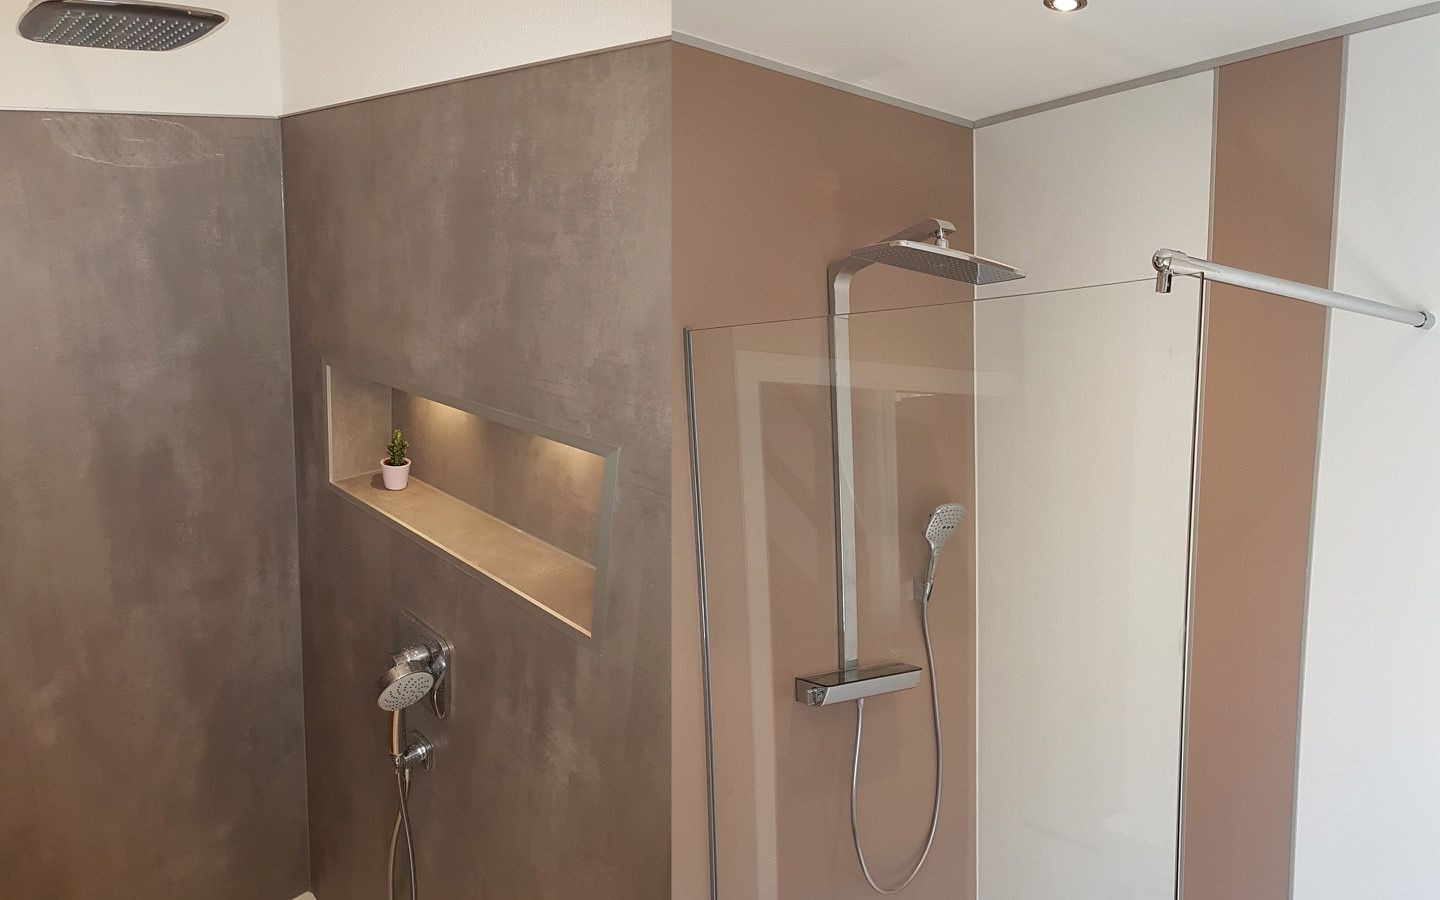 PAVIMI rear shower wall